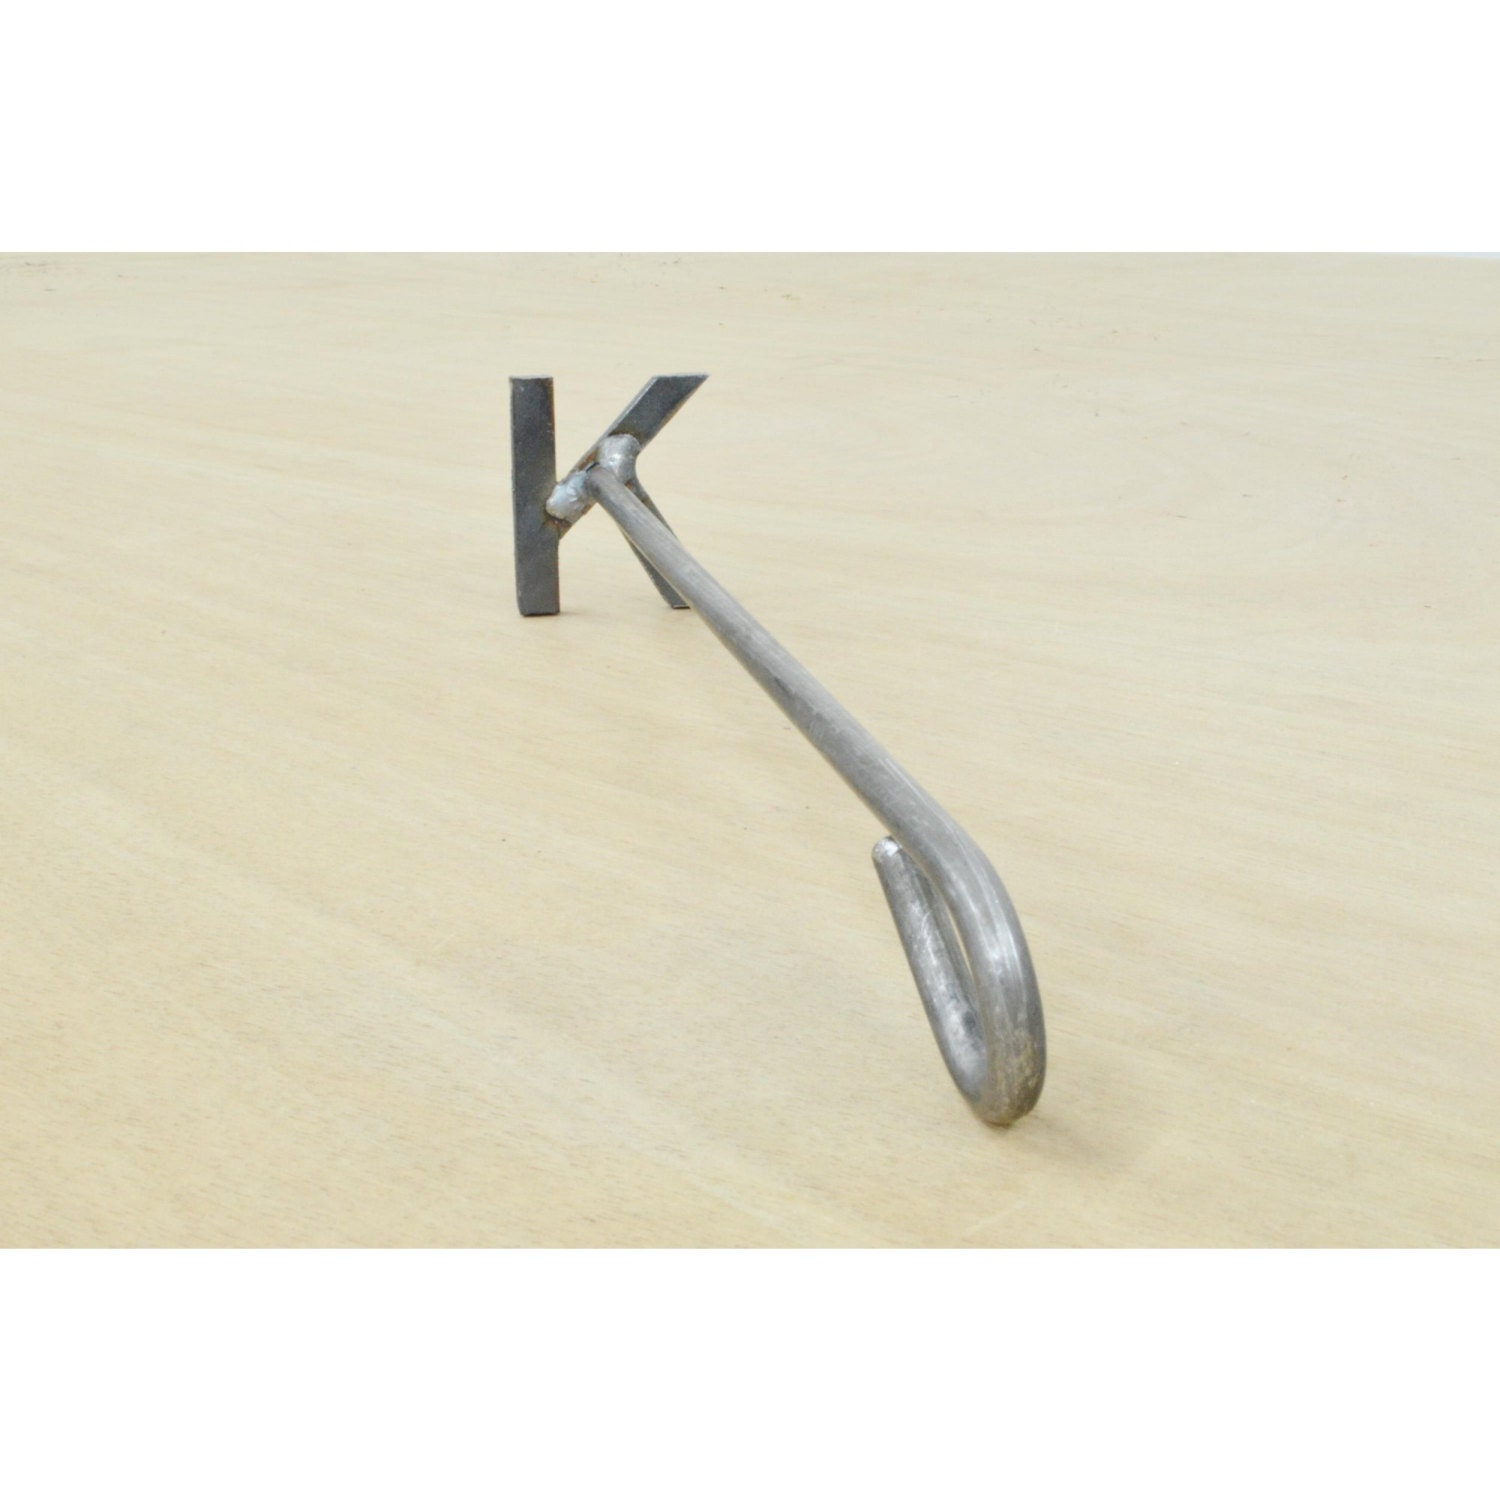 letter k branding iron steak brand wood burning by theleatherguymn